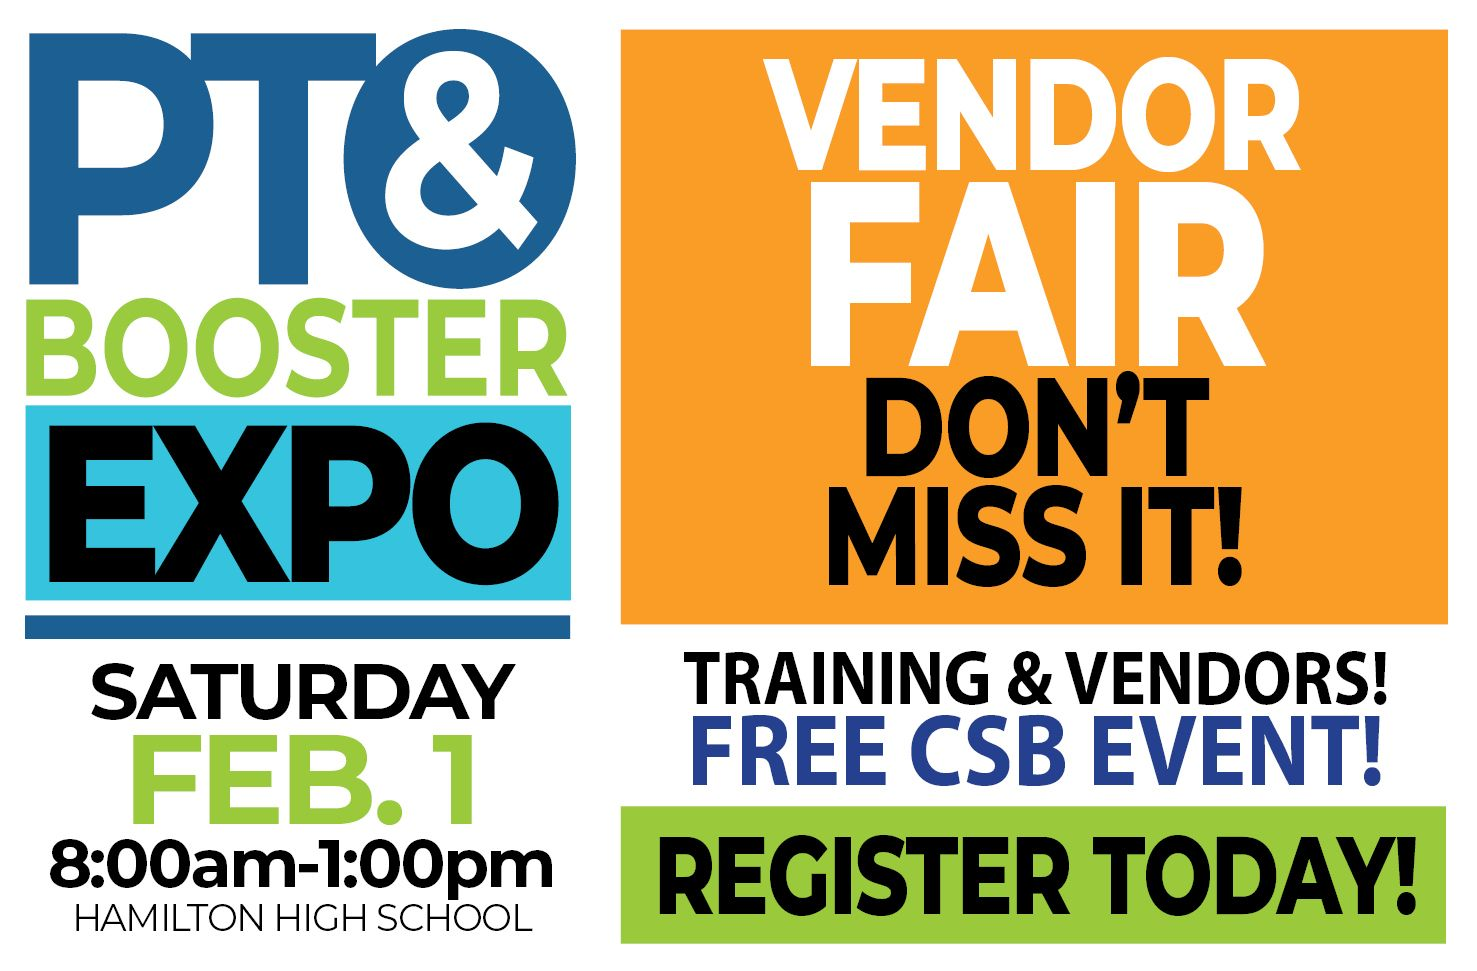 CSB Winter Expo - REGISTER TODAY!